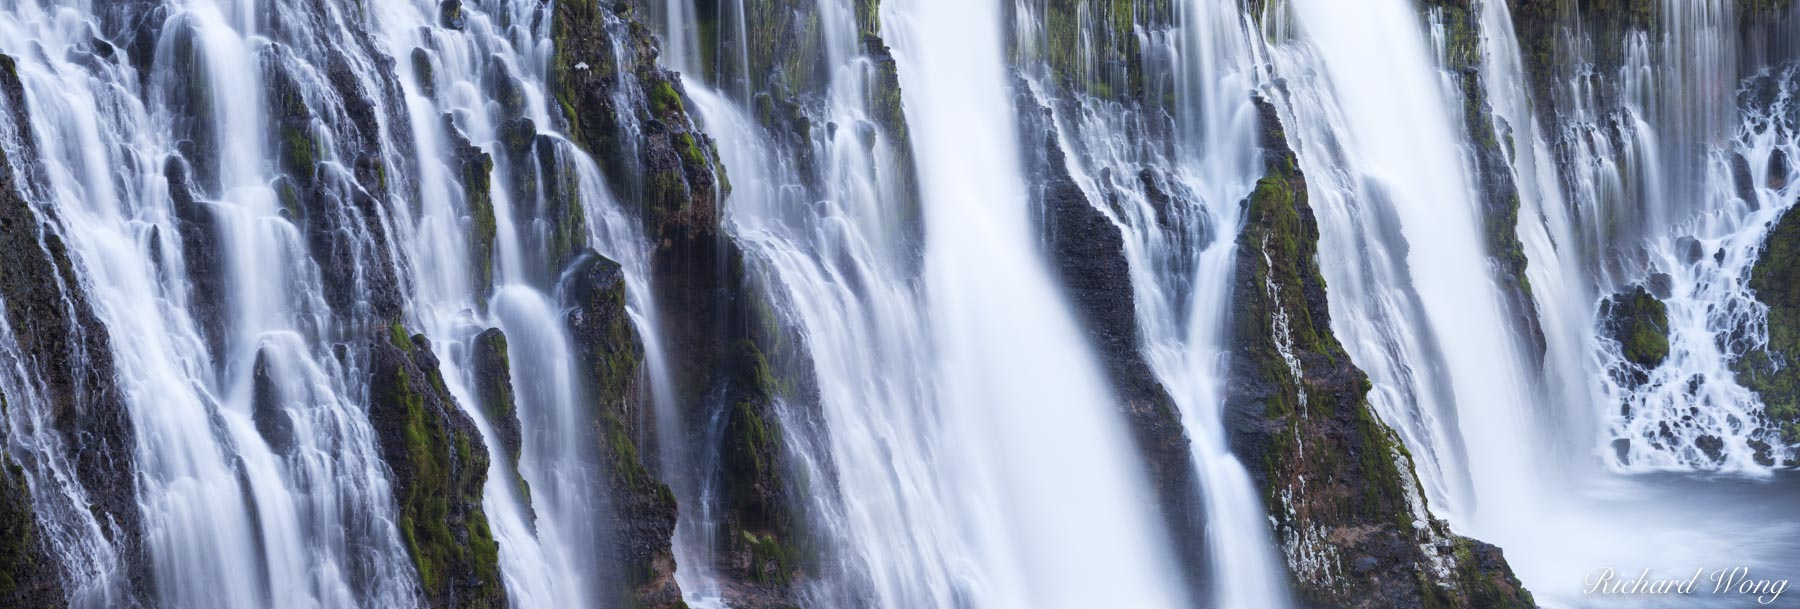 Burney Falls Panoramic, MacArthur-Burney Falls Memorial State Park, California, photo, photo